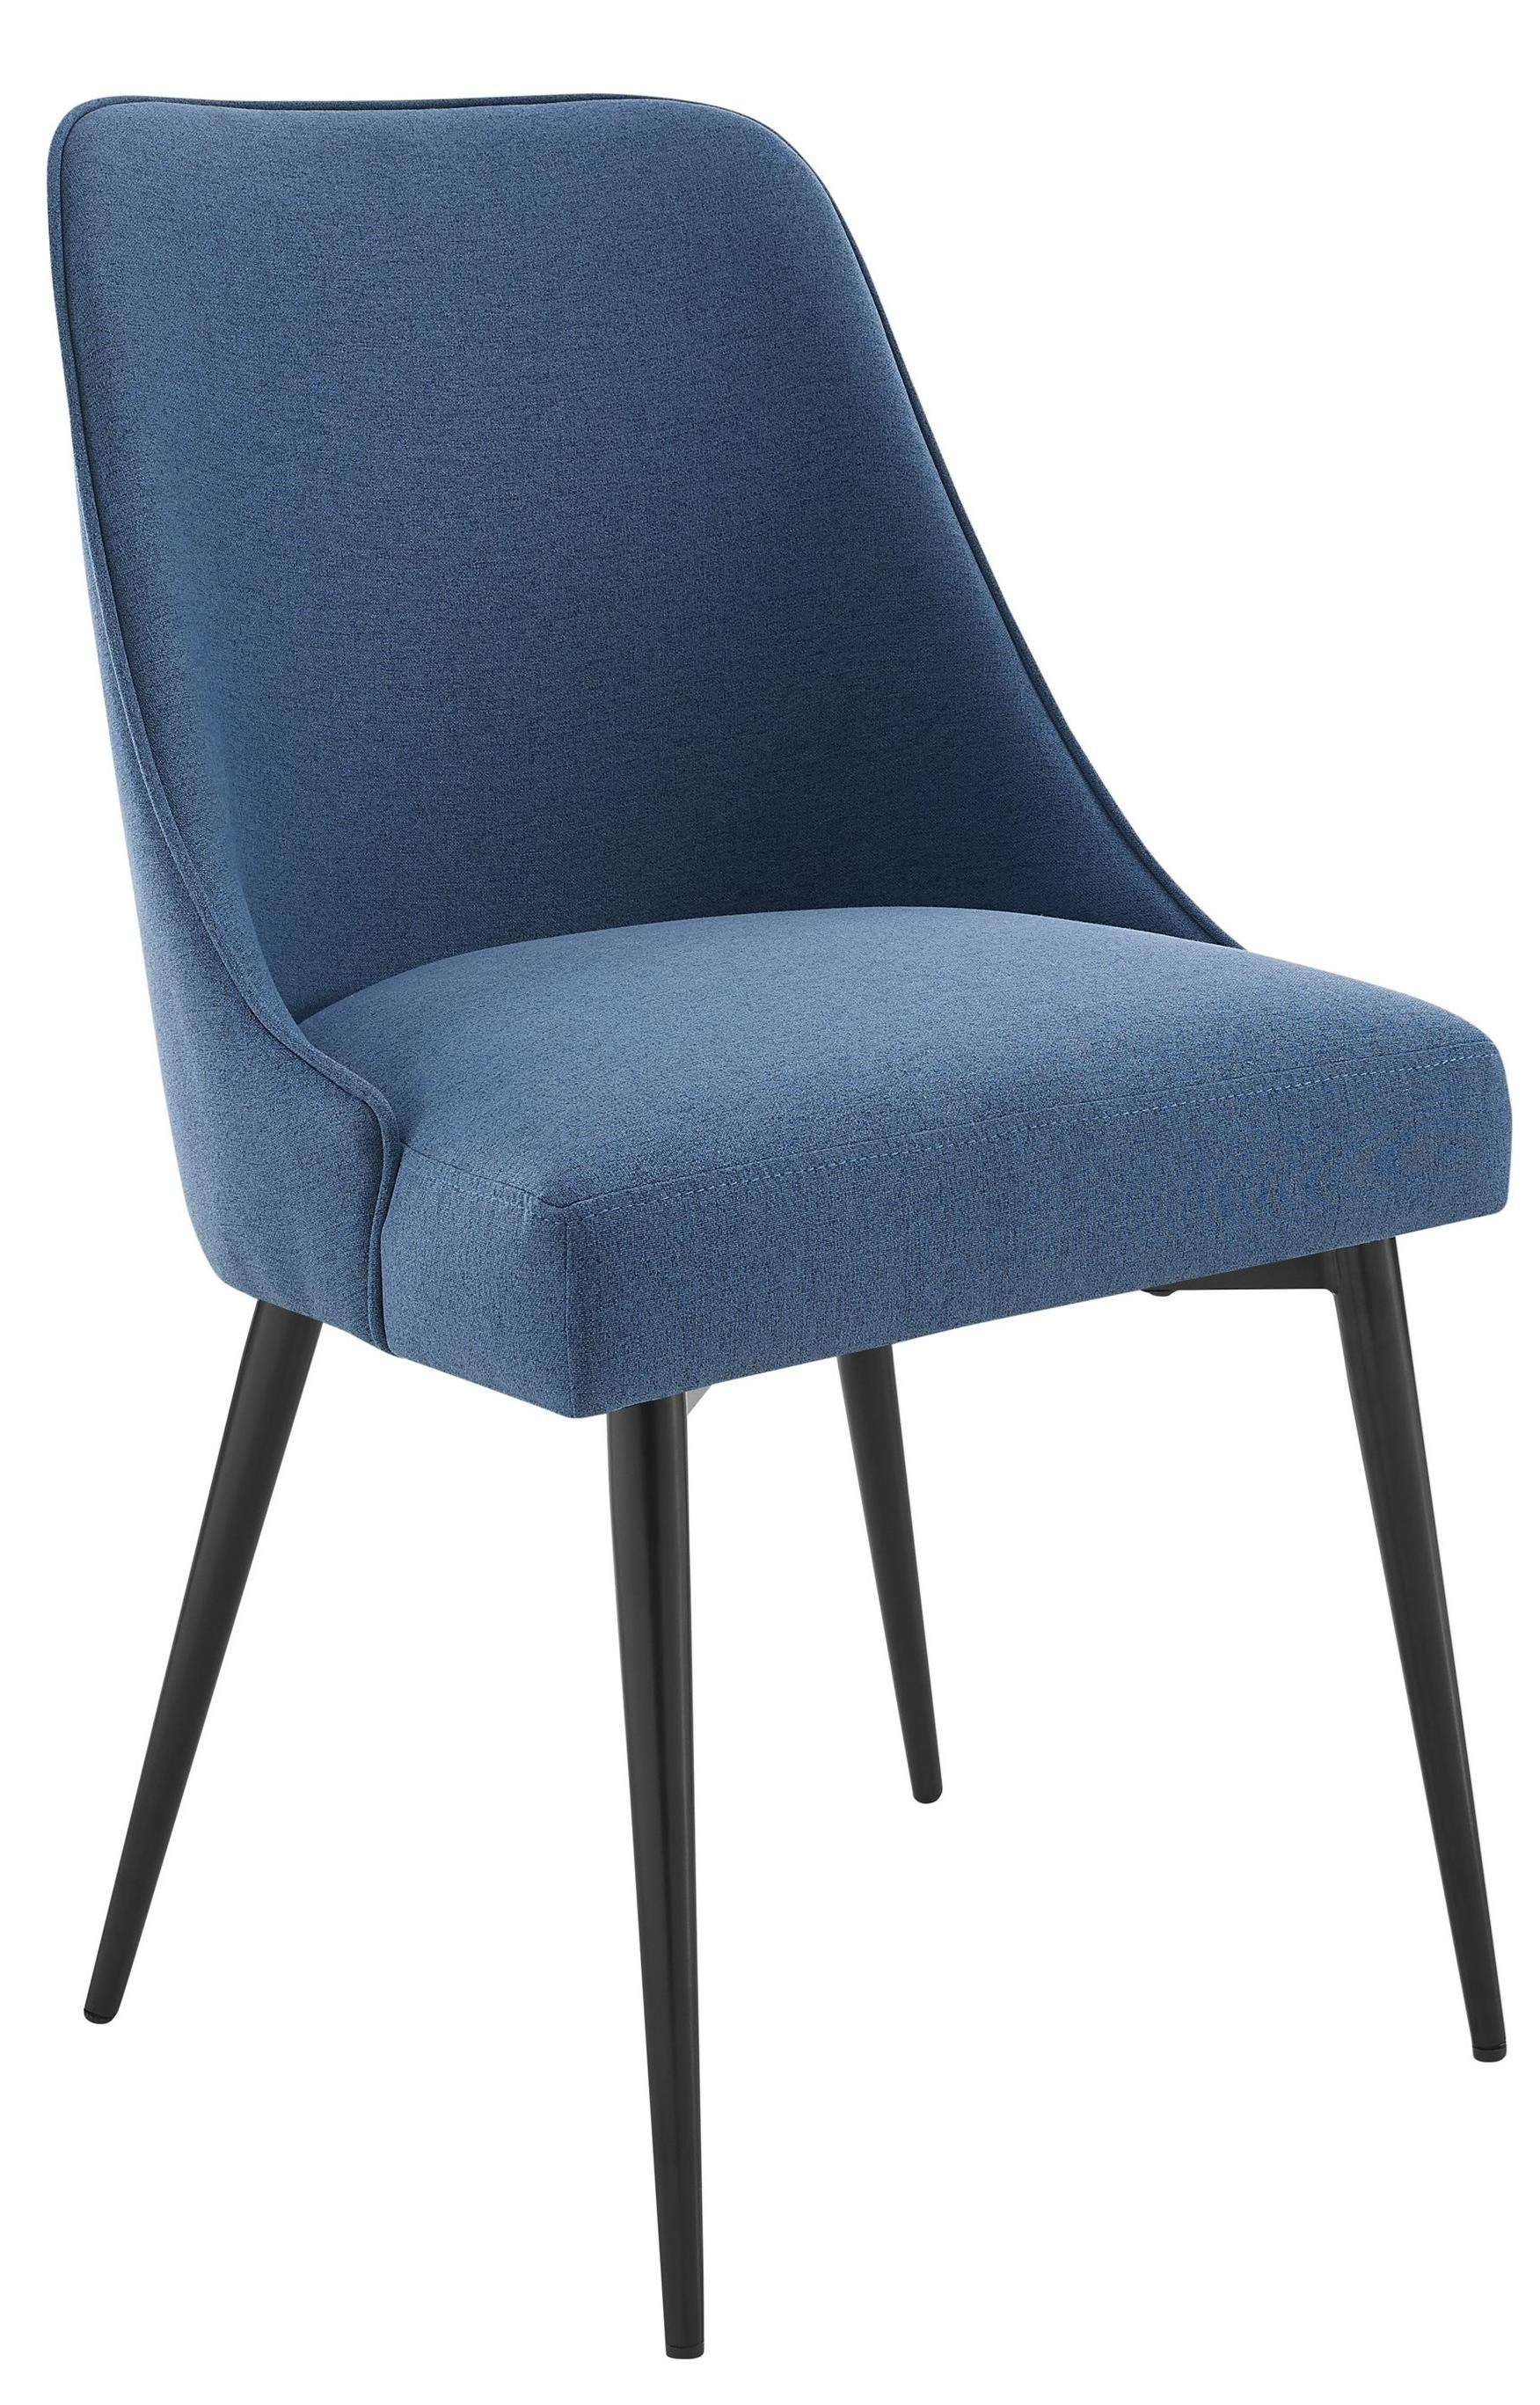 Colfax Side Chair by Steve Silver at Walker's Furniture